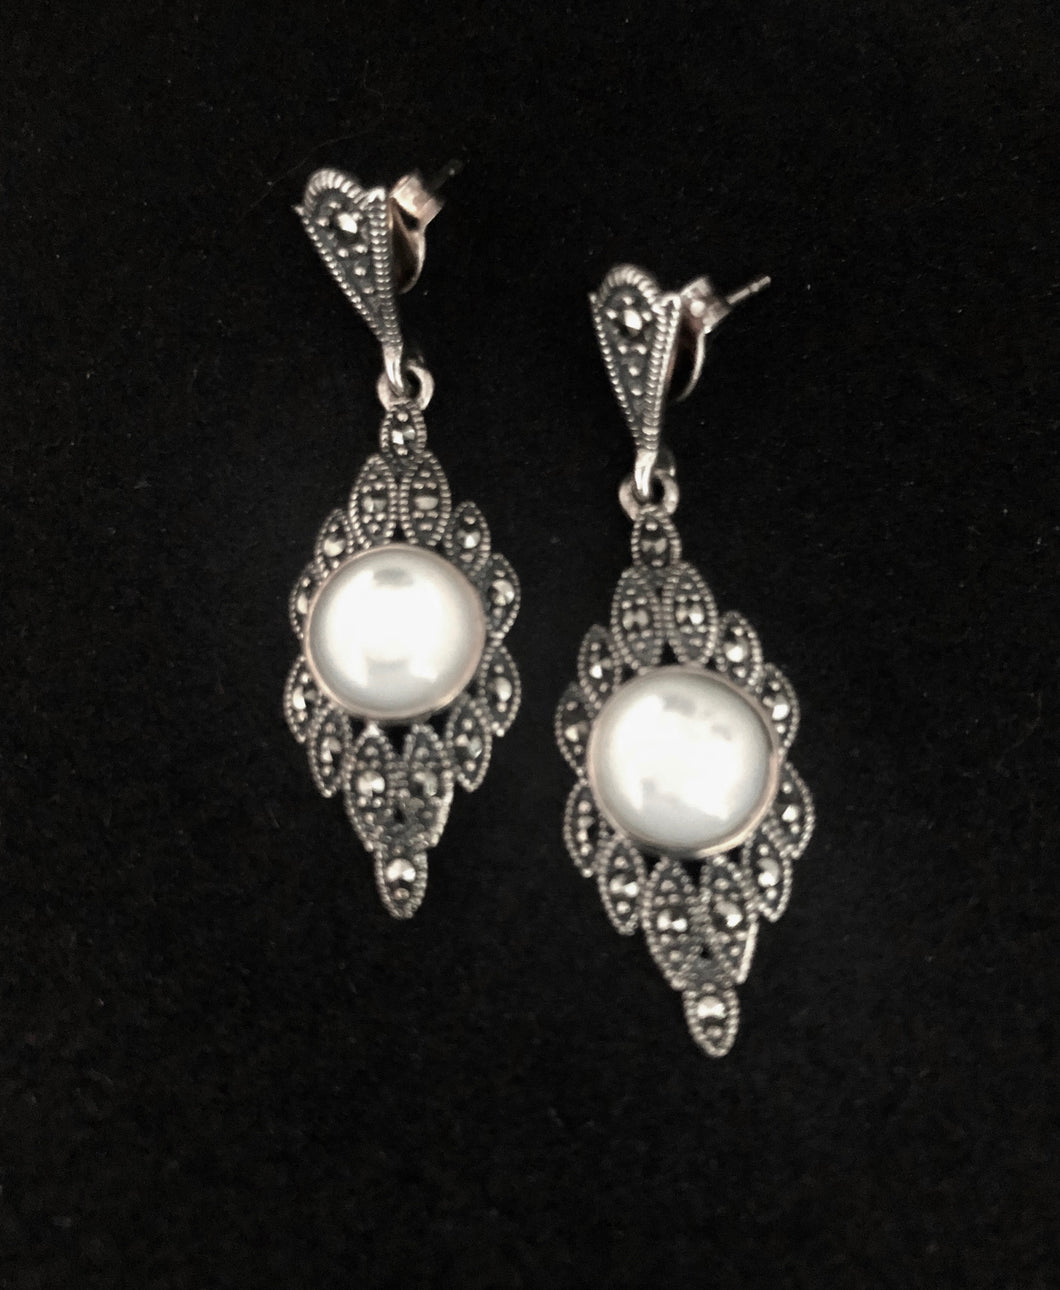 Earrings - DE1051    Stunning 925 Sterling Silver, Marcasite and Mother of Pearl Earrings